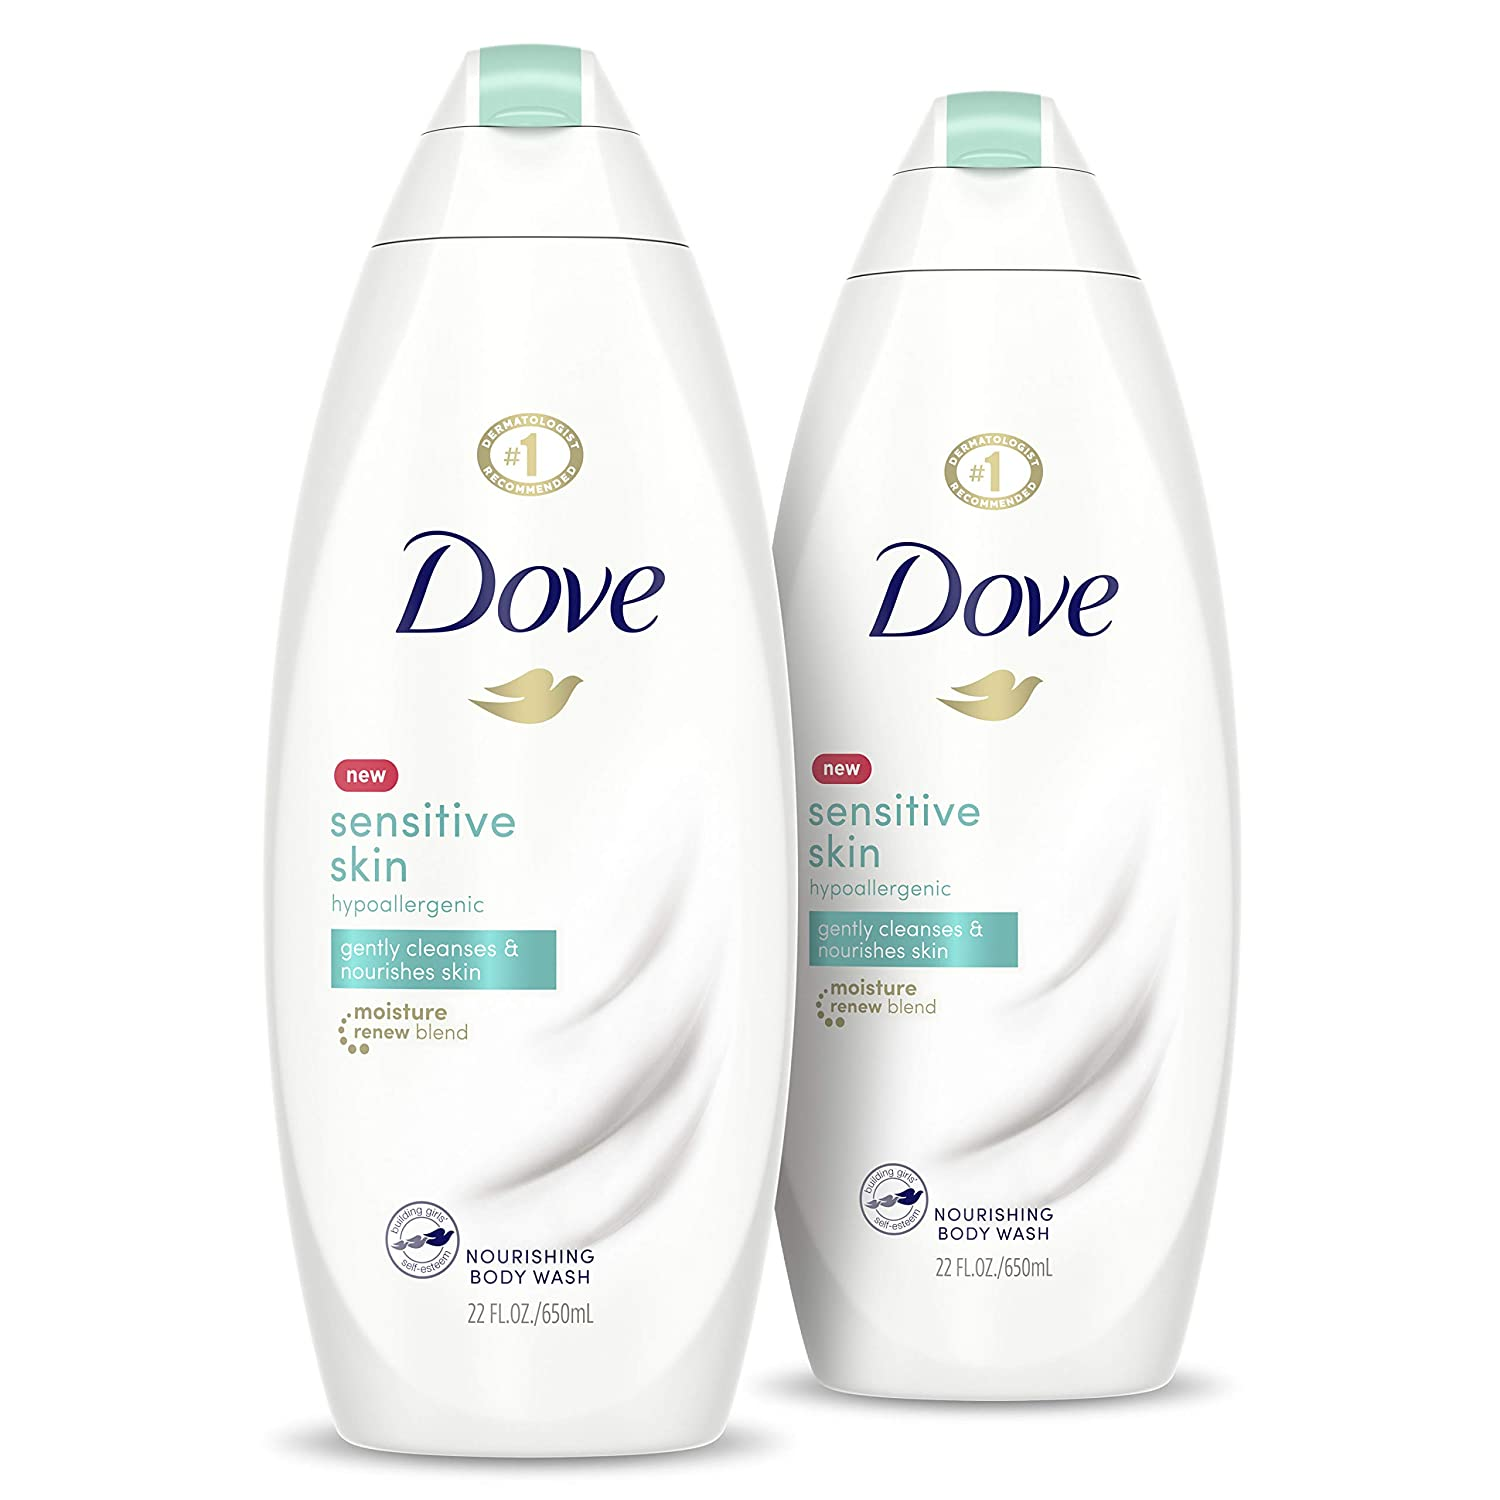 Amazon Com Dove Sensitive Skin Body Wash Hypoallergenic Gently Cleanses Nourishes Skin Sensitive Skin Moisturizing And Sulfate Free 22 Oz 2 Count Beauty